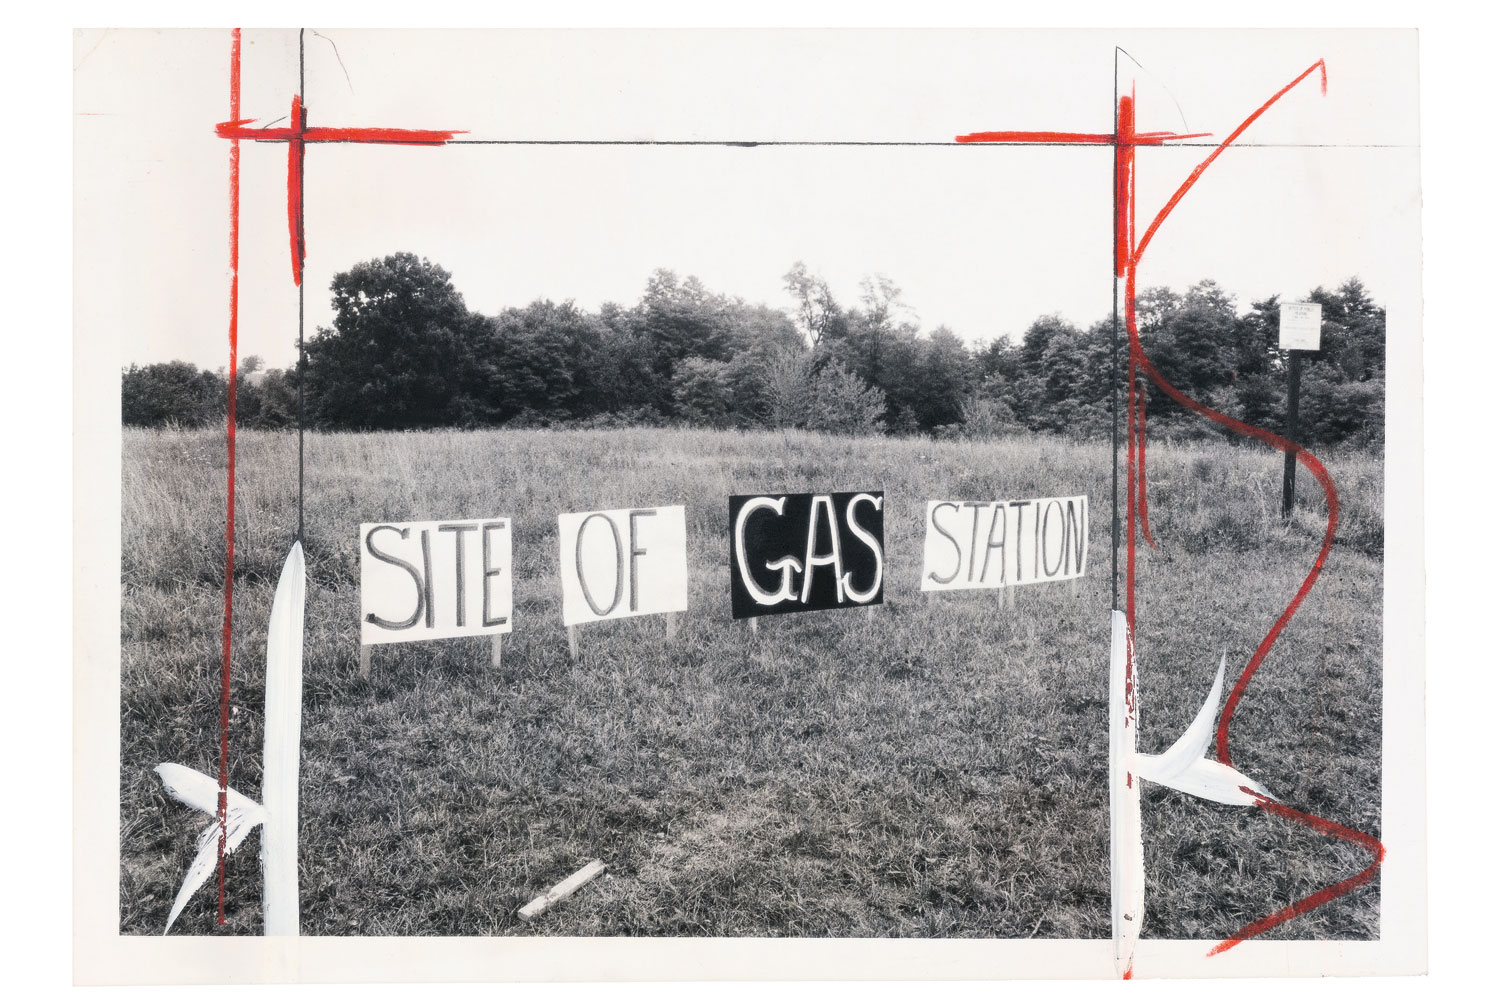 The following photographs were taken from 1944 - 1995 by various press photographers. The titles were taken from any information available on the back of each print, often hand-written editors' notes.More signs in a field clearly mark the spot where HRD wants to pump gas